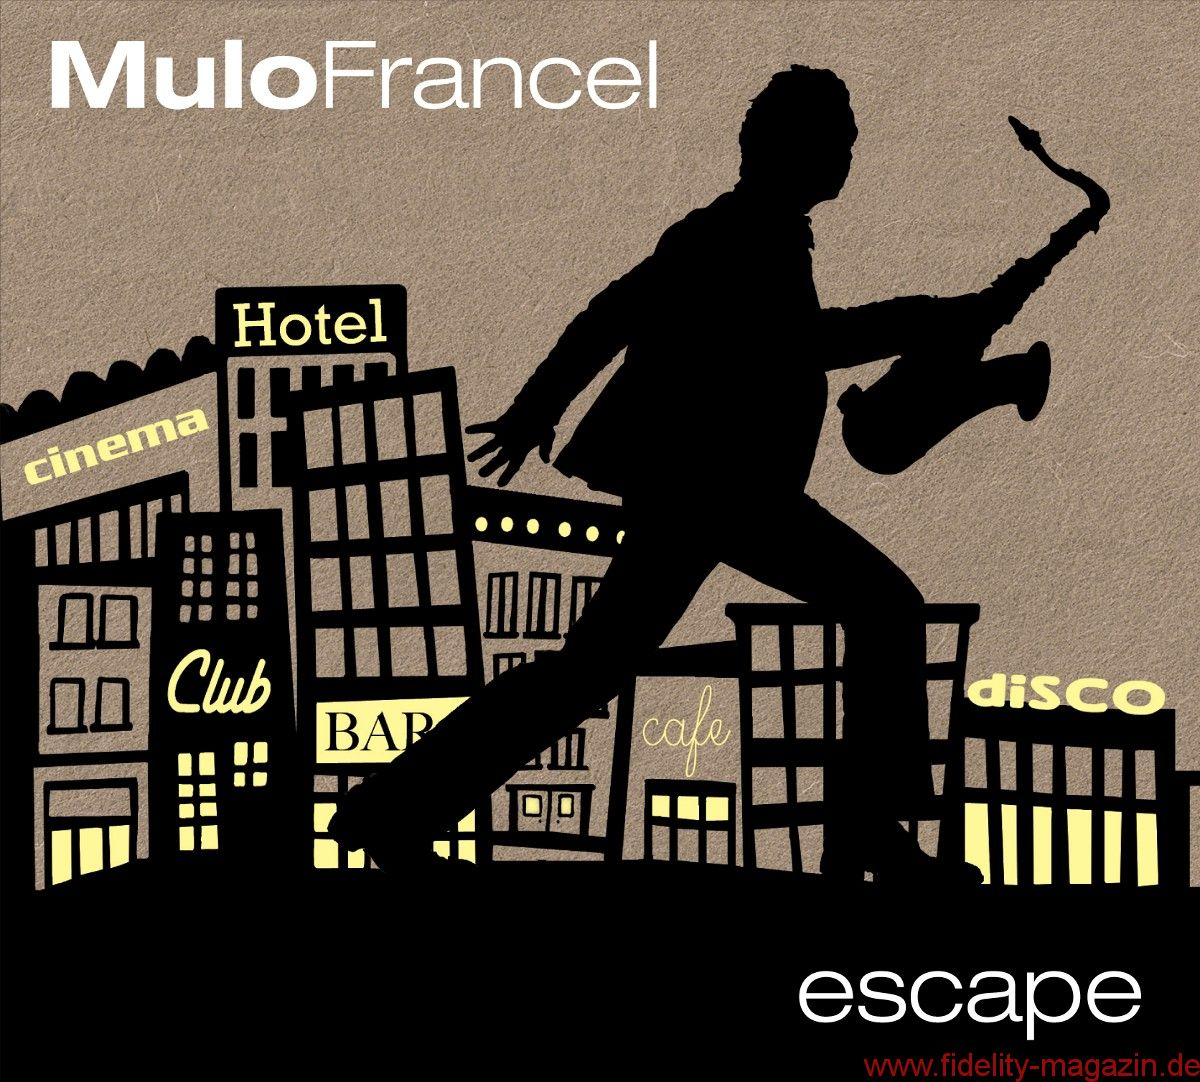 Mulo Francel – Escape